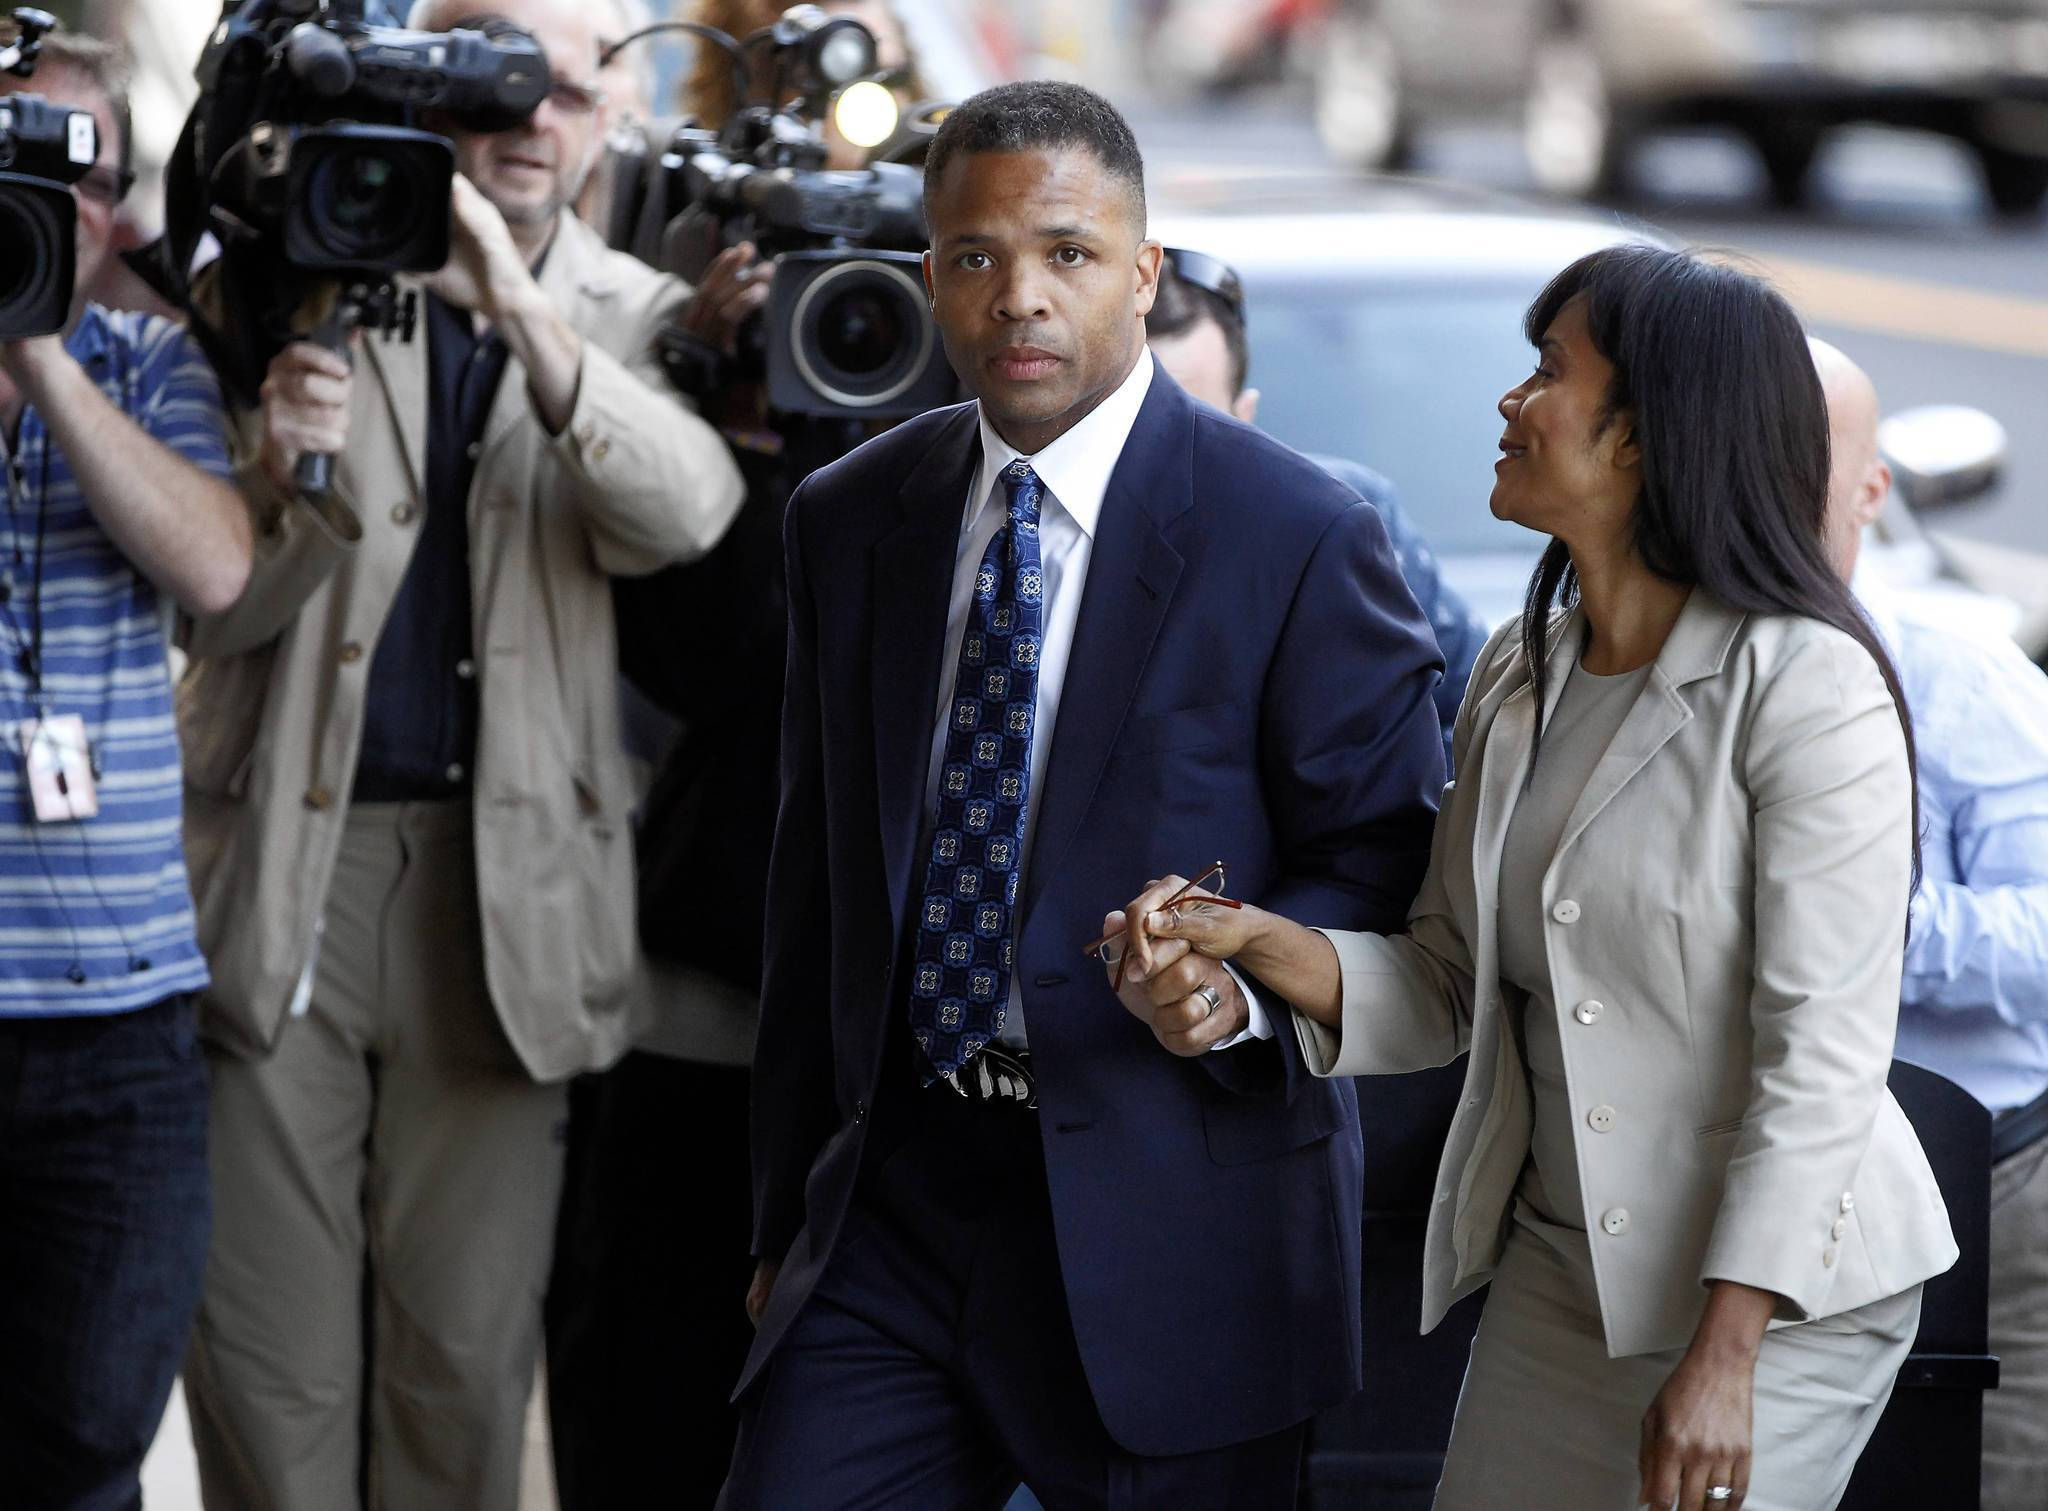 Jesse Jackson Jr S Workers Compensation Benefits